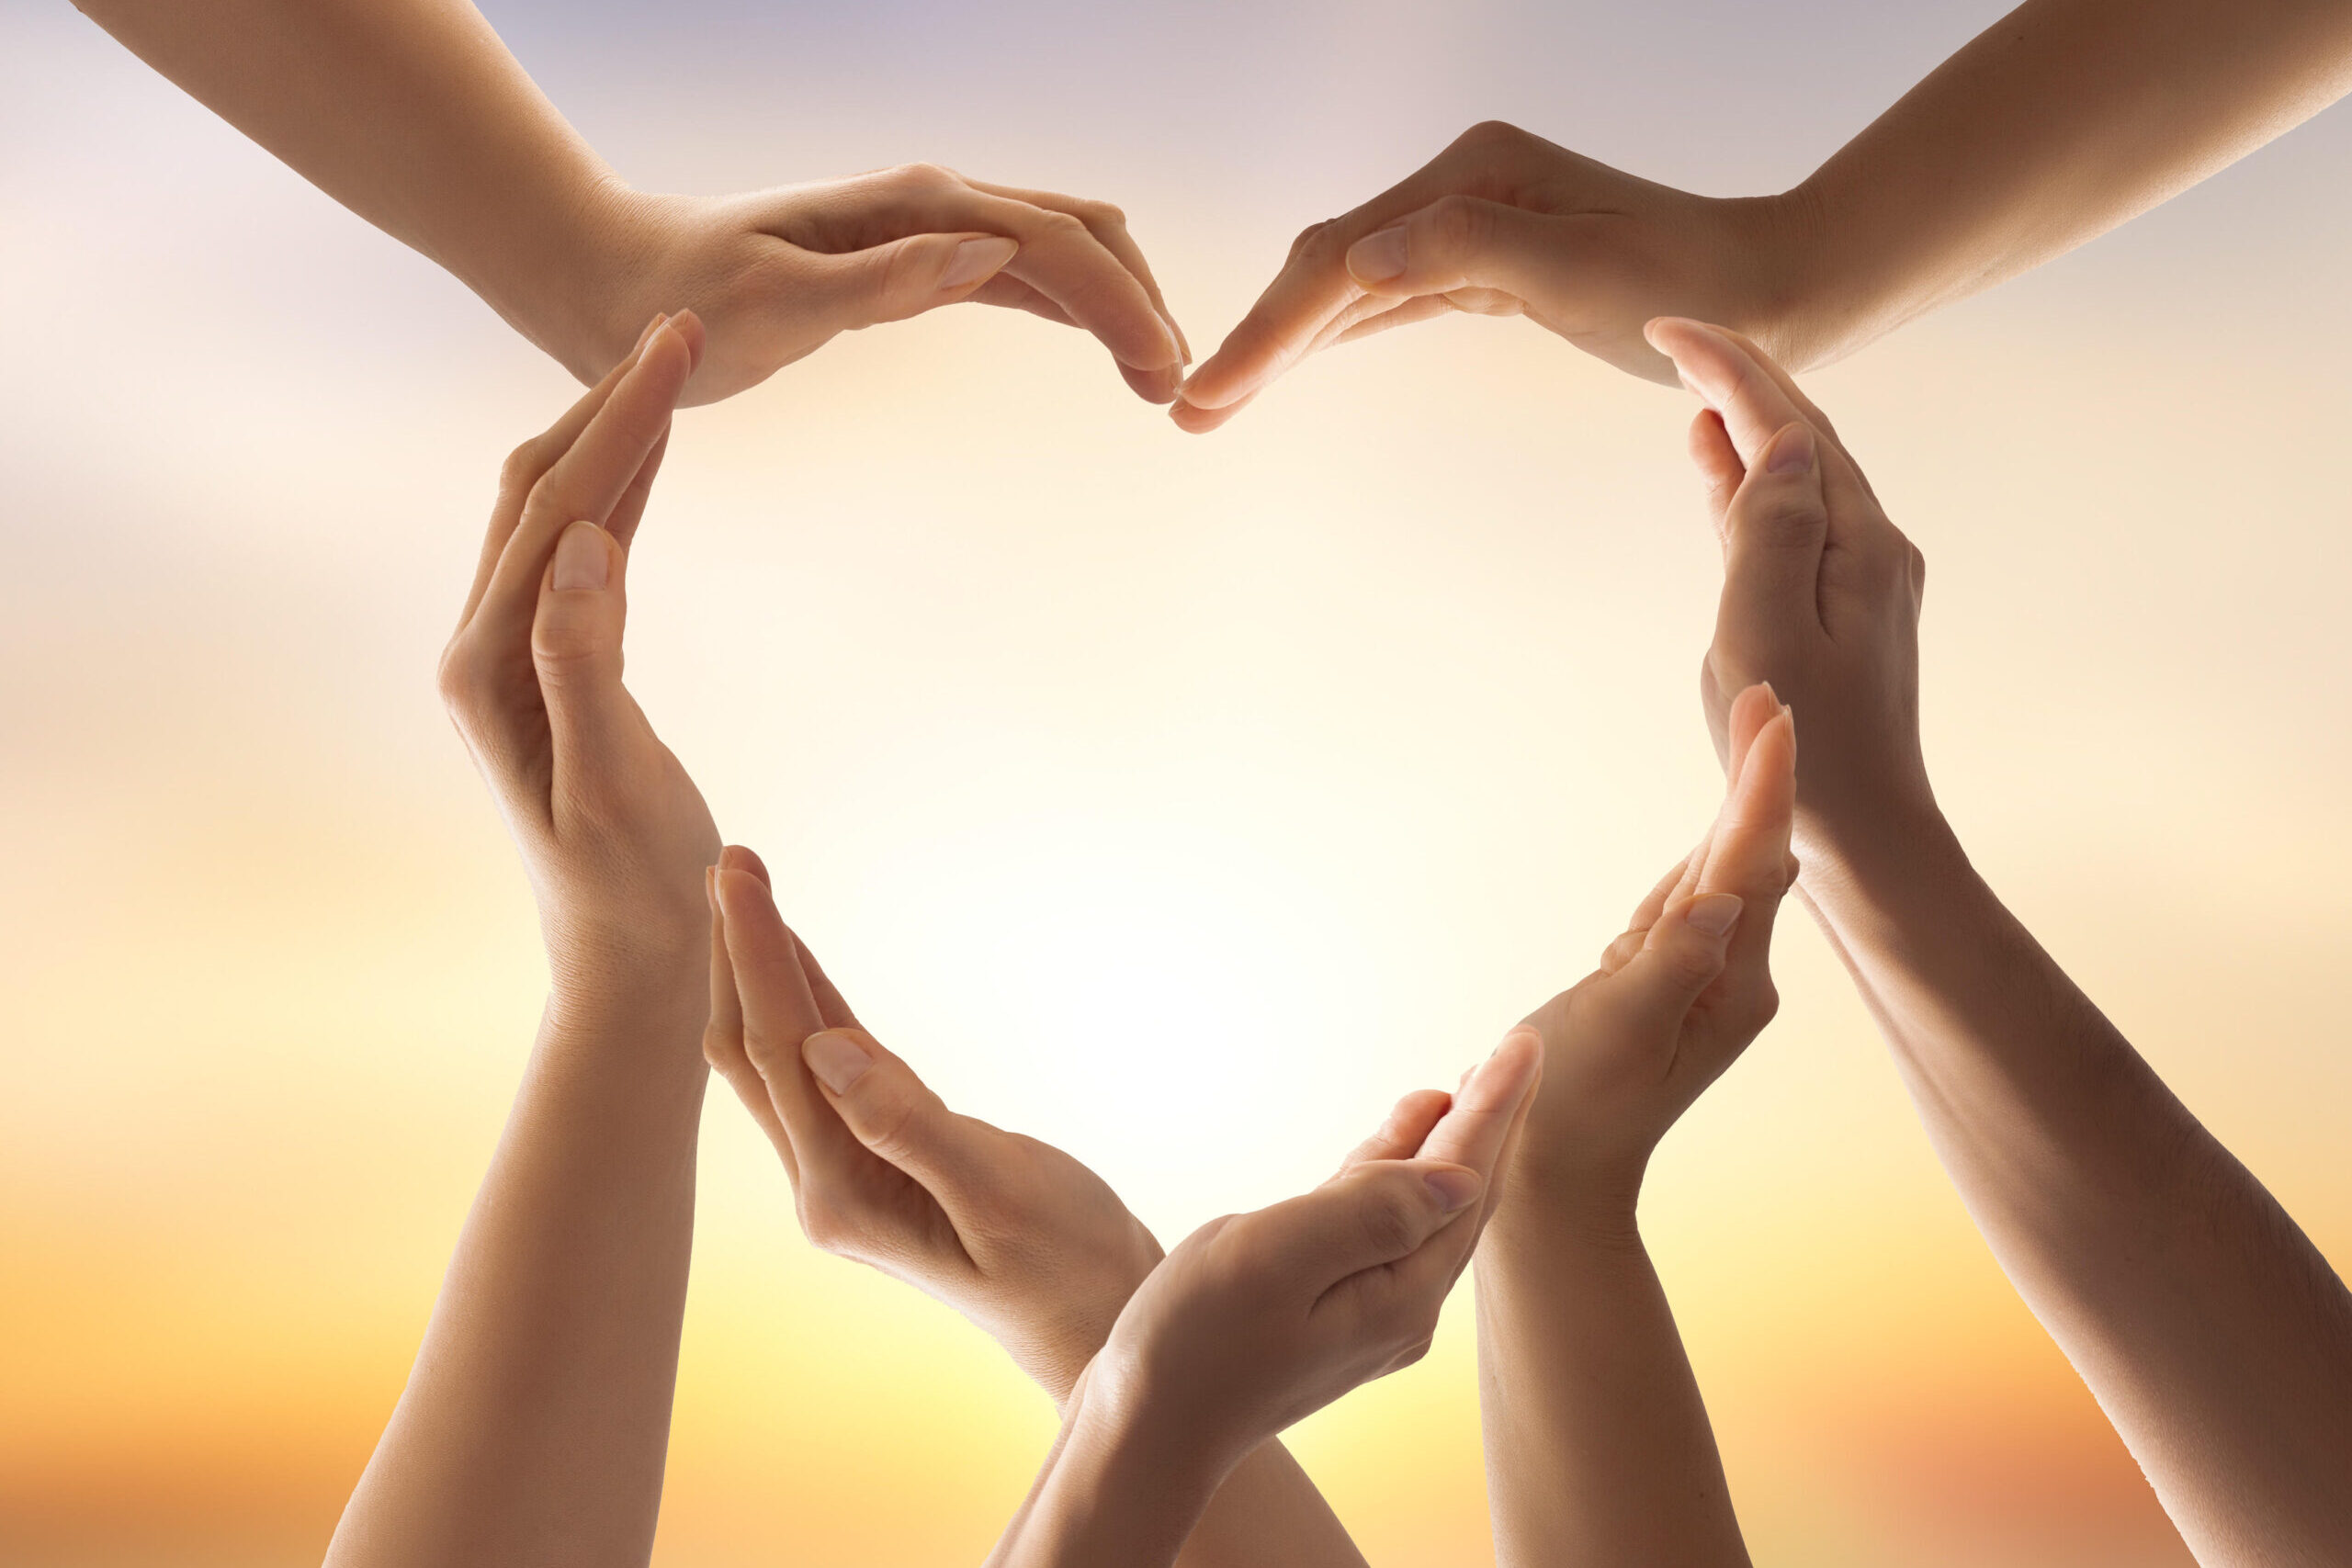 Symbol and shape of heart created from hands.The concept of unity, cooperation, partnership, teamwork and charity.